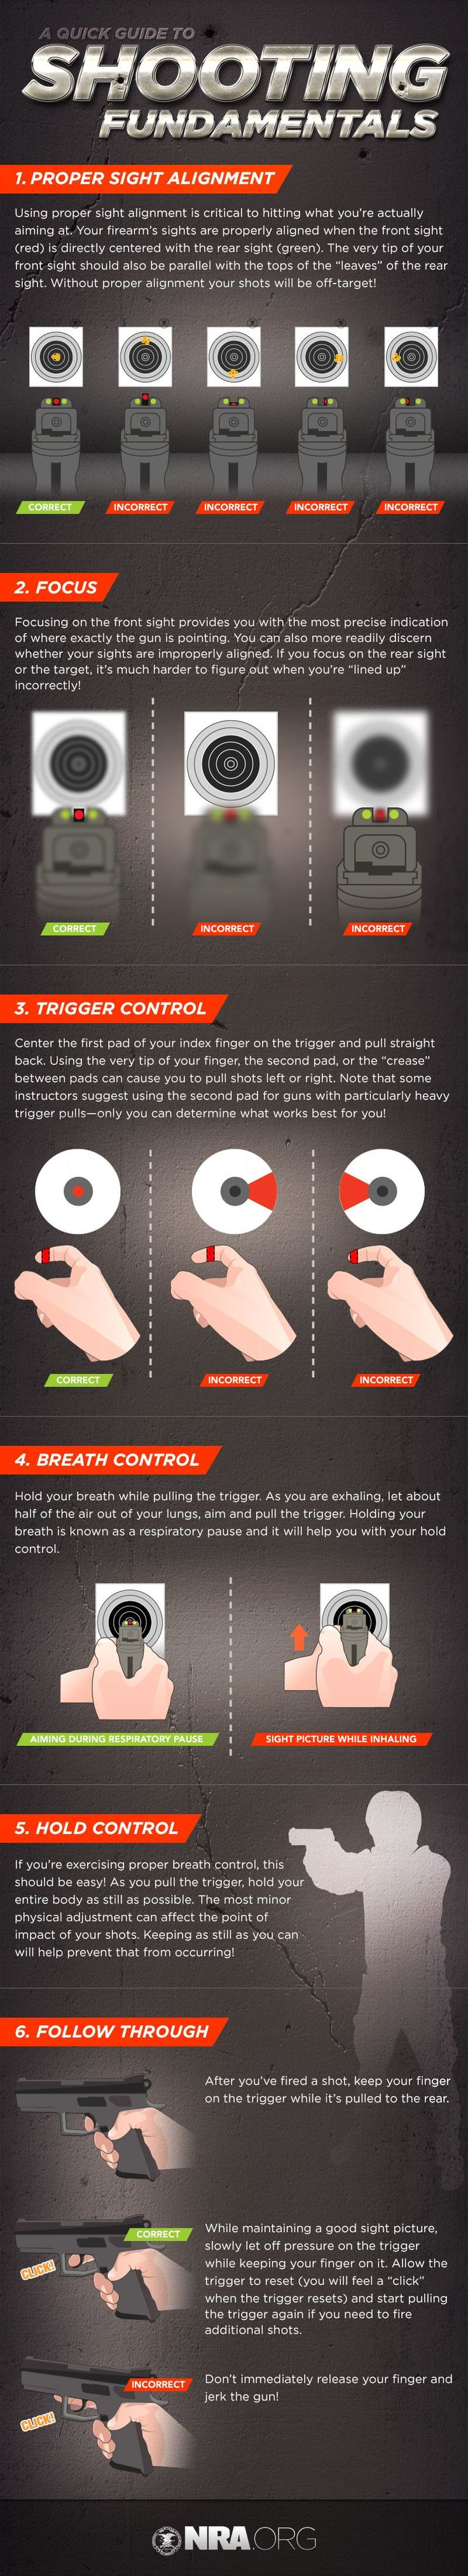 INFOGRAPHIC: A Quick Guide to Shooting Fundamentals --BY: OutdoorHub + POSTED: 9/2/15